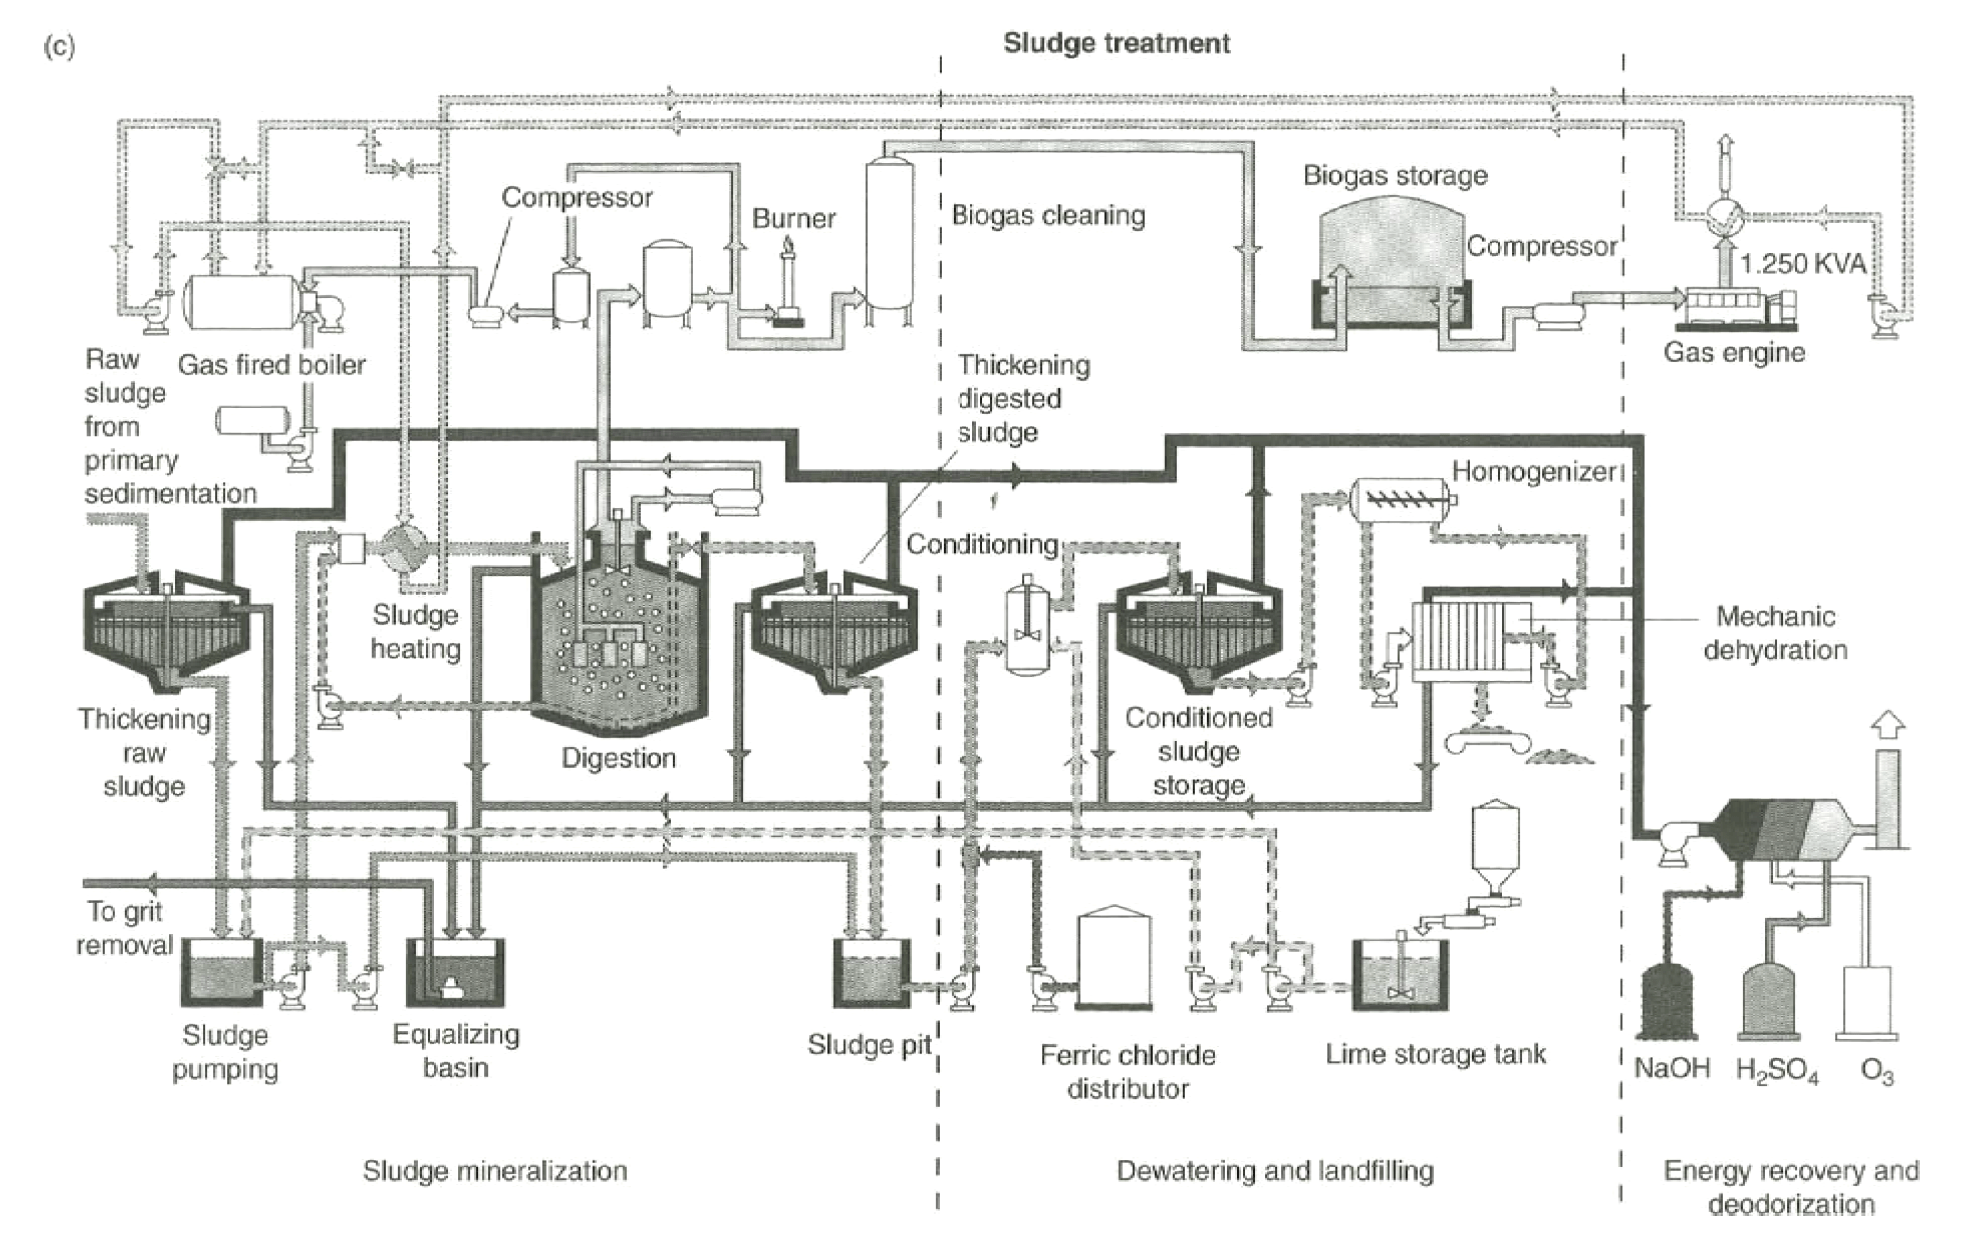 wastewater treatment plant flow diagram 240v 24v transformer wiring biological and chemical processes intechopen figure 55 wwtp